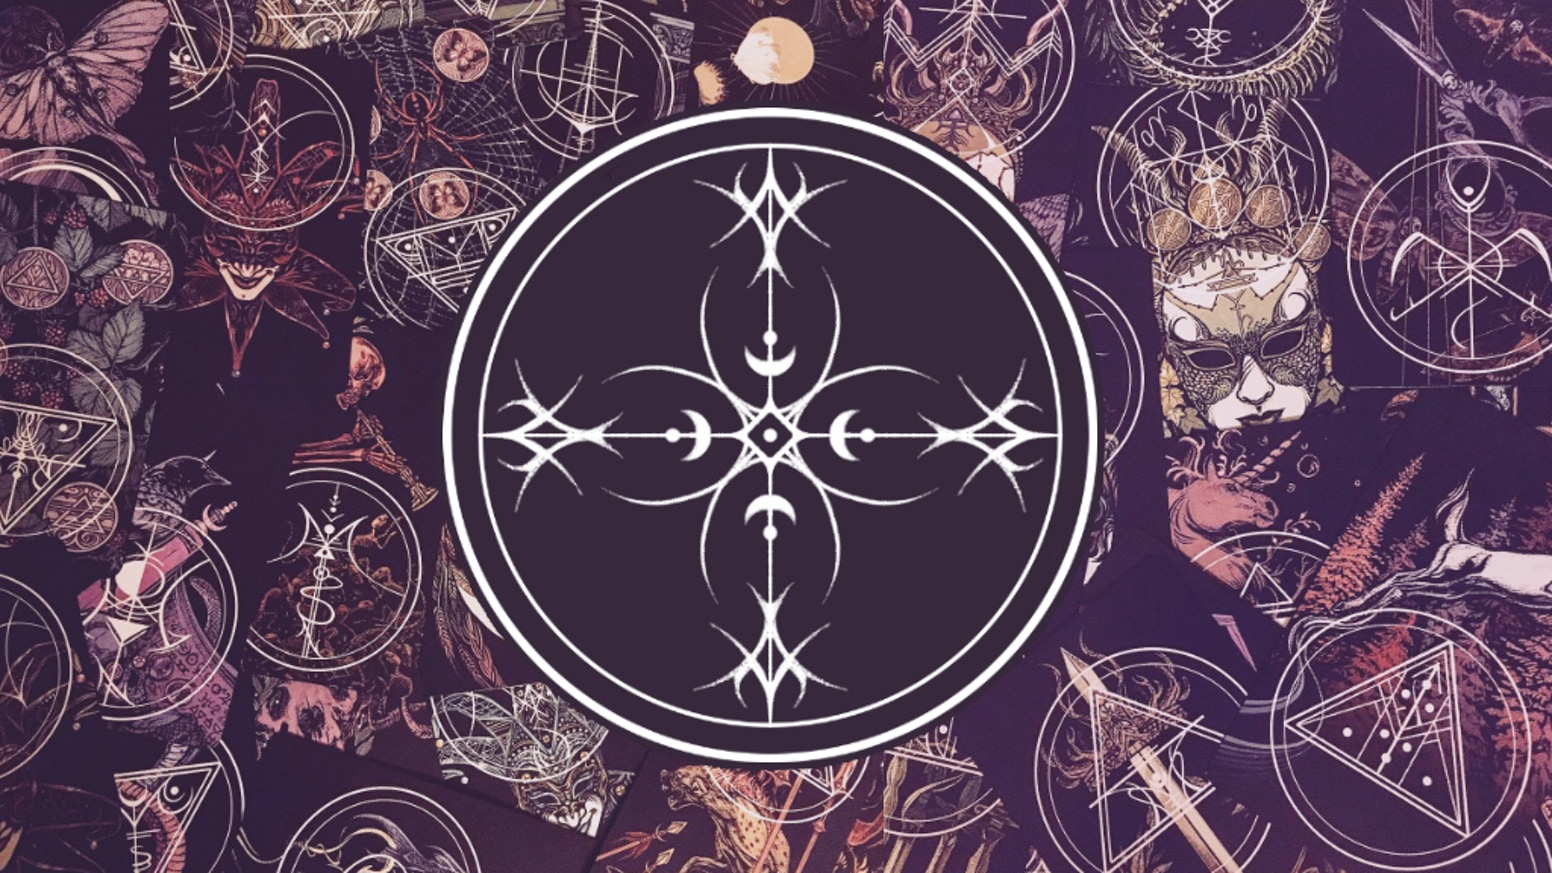 Afully illustrated, large format deck combining Tarot, Sigil, & Oracle. Each card has a unique Sigil crafted from positive affirmations based on the cards meaning. 108 cards total: 78correspond to traditional tarot meanings & 30 are Oracle cards.